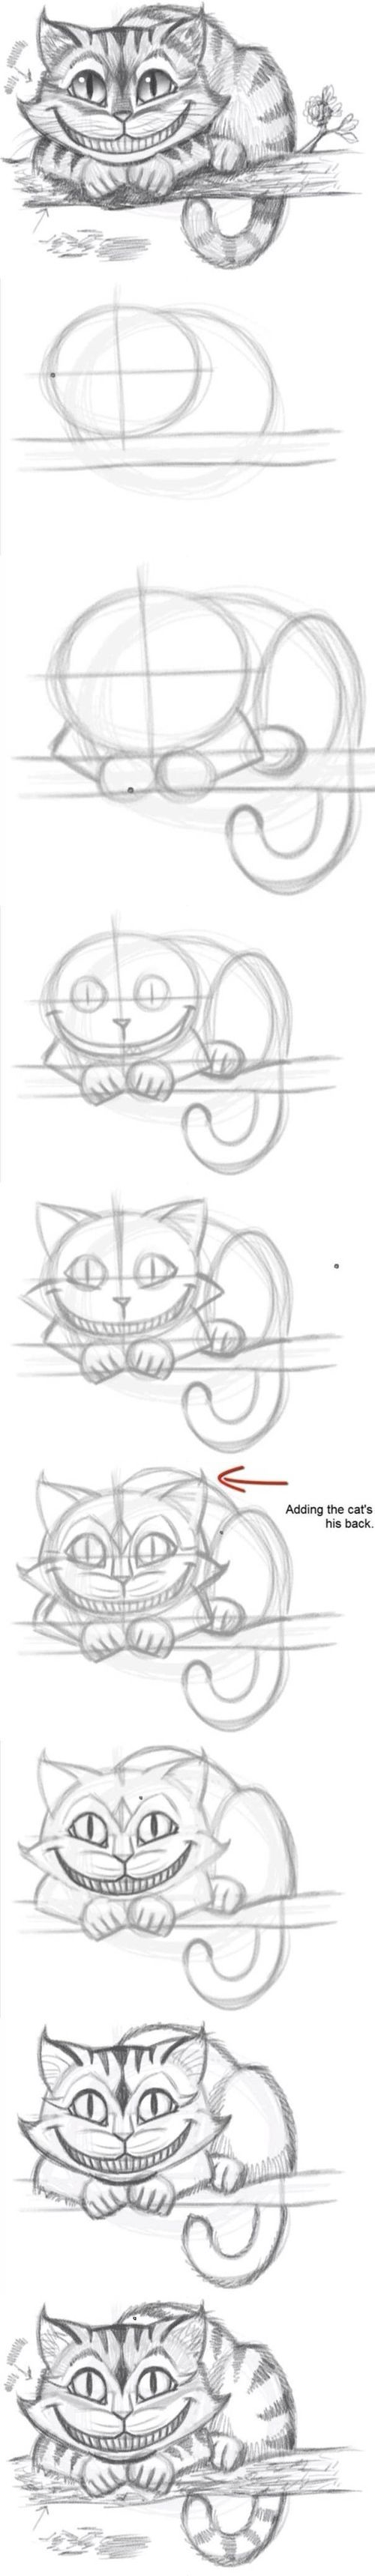 DIY Easily Draw the Cheshire Cat Tutorial / UsefulDIY.com